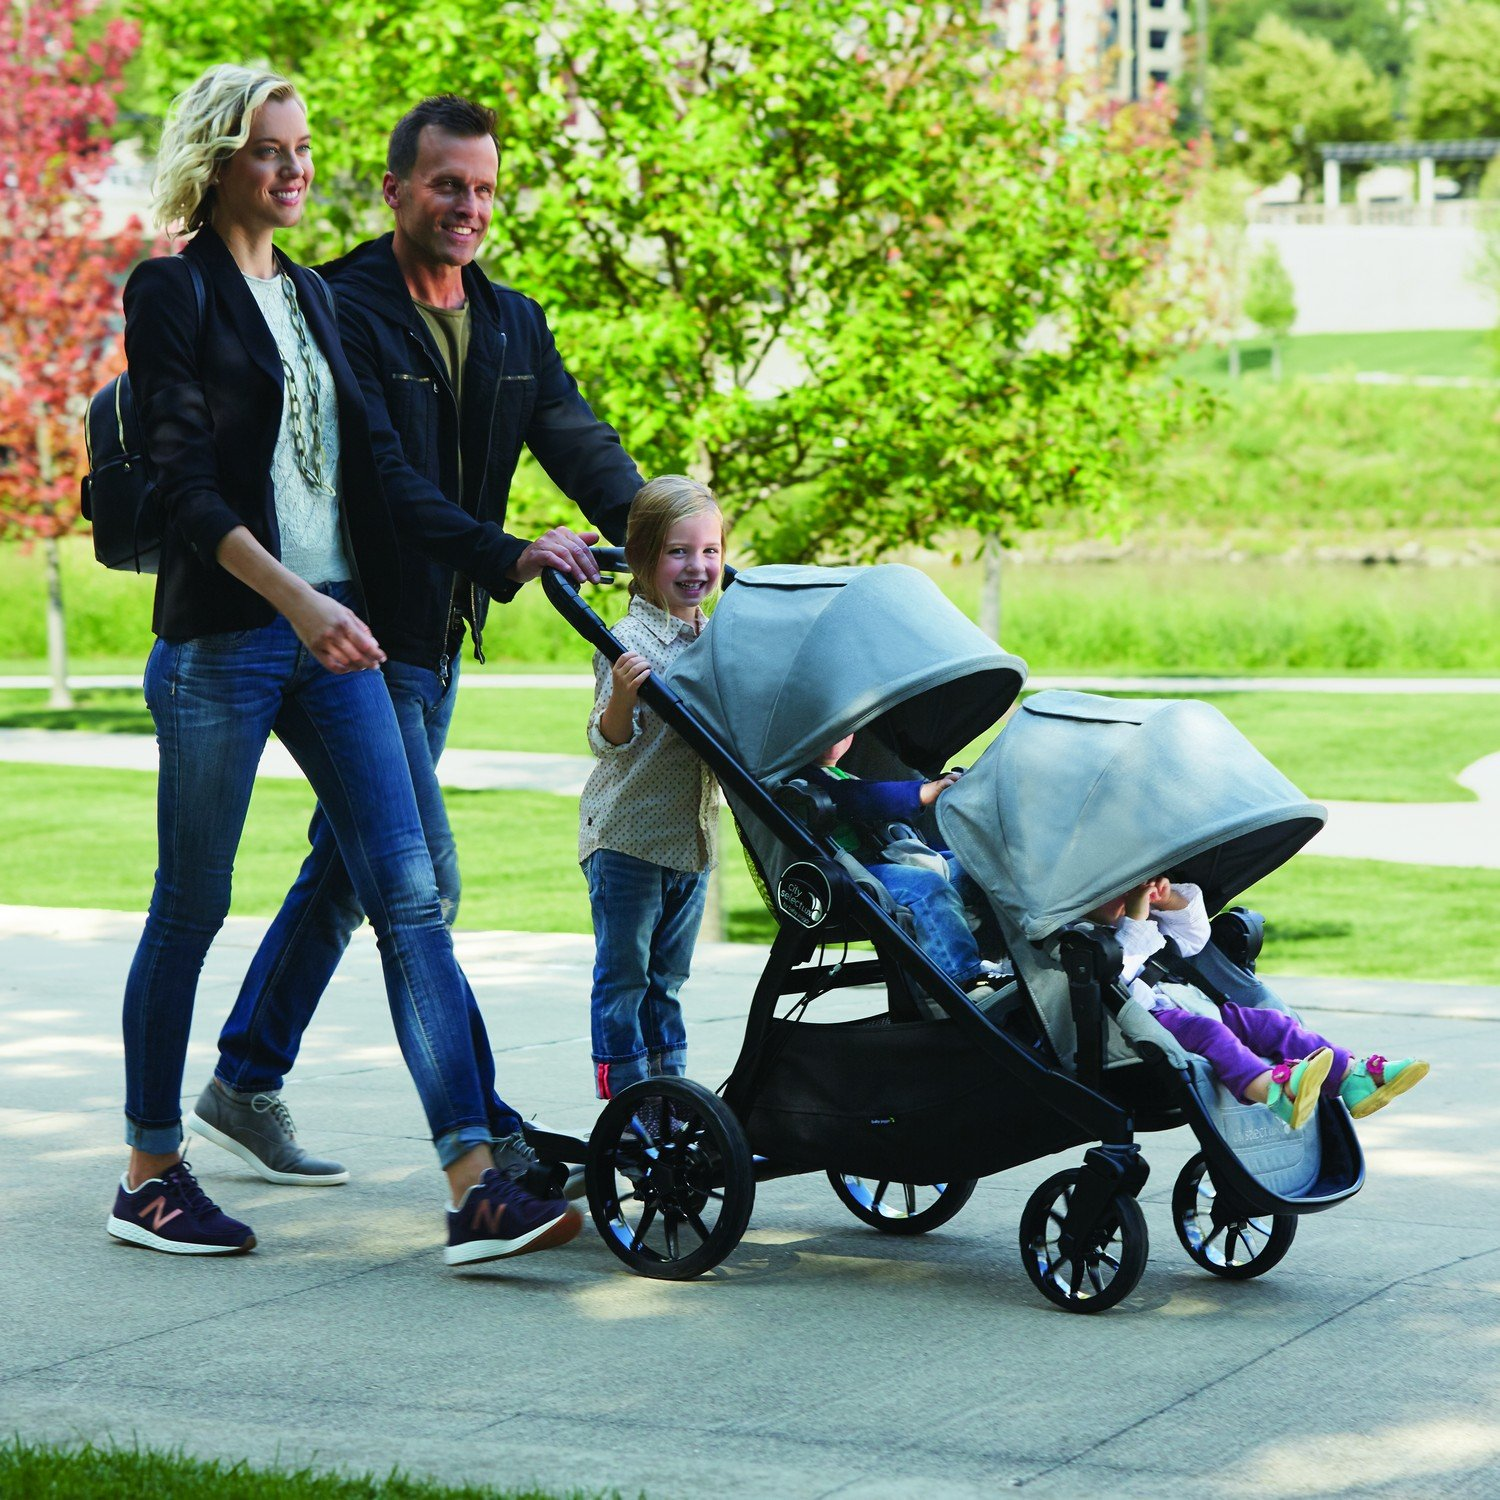 Baby Jogger City Select LUX Second Seat Kit, Slate 2011476